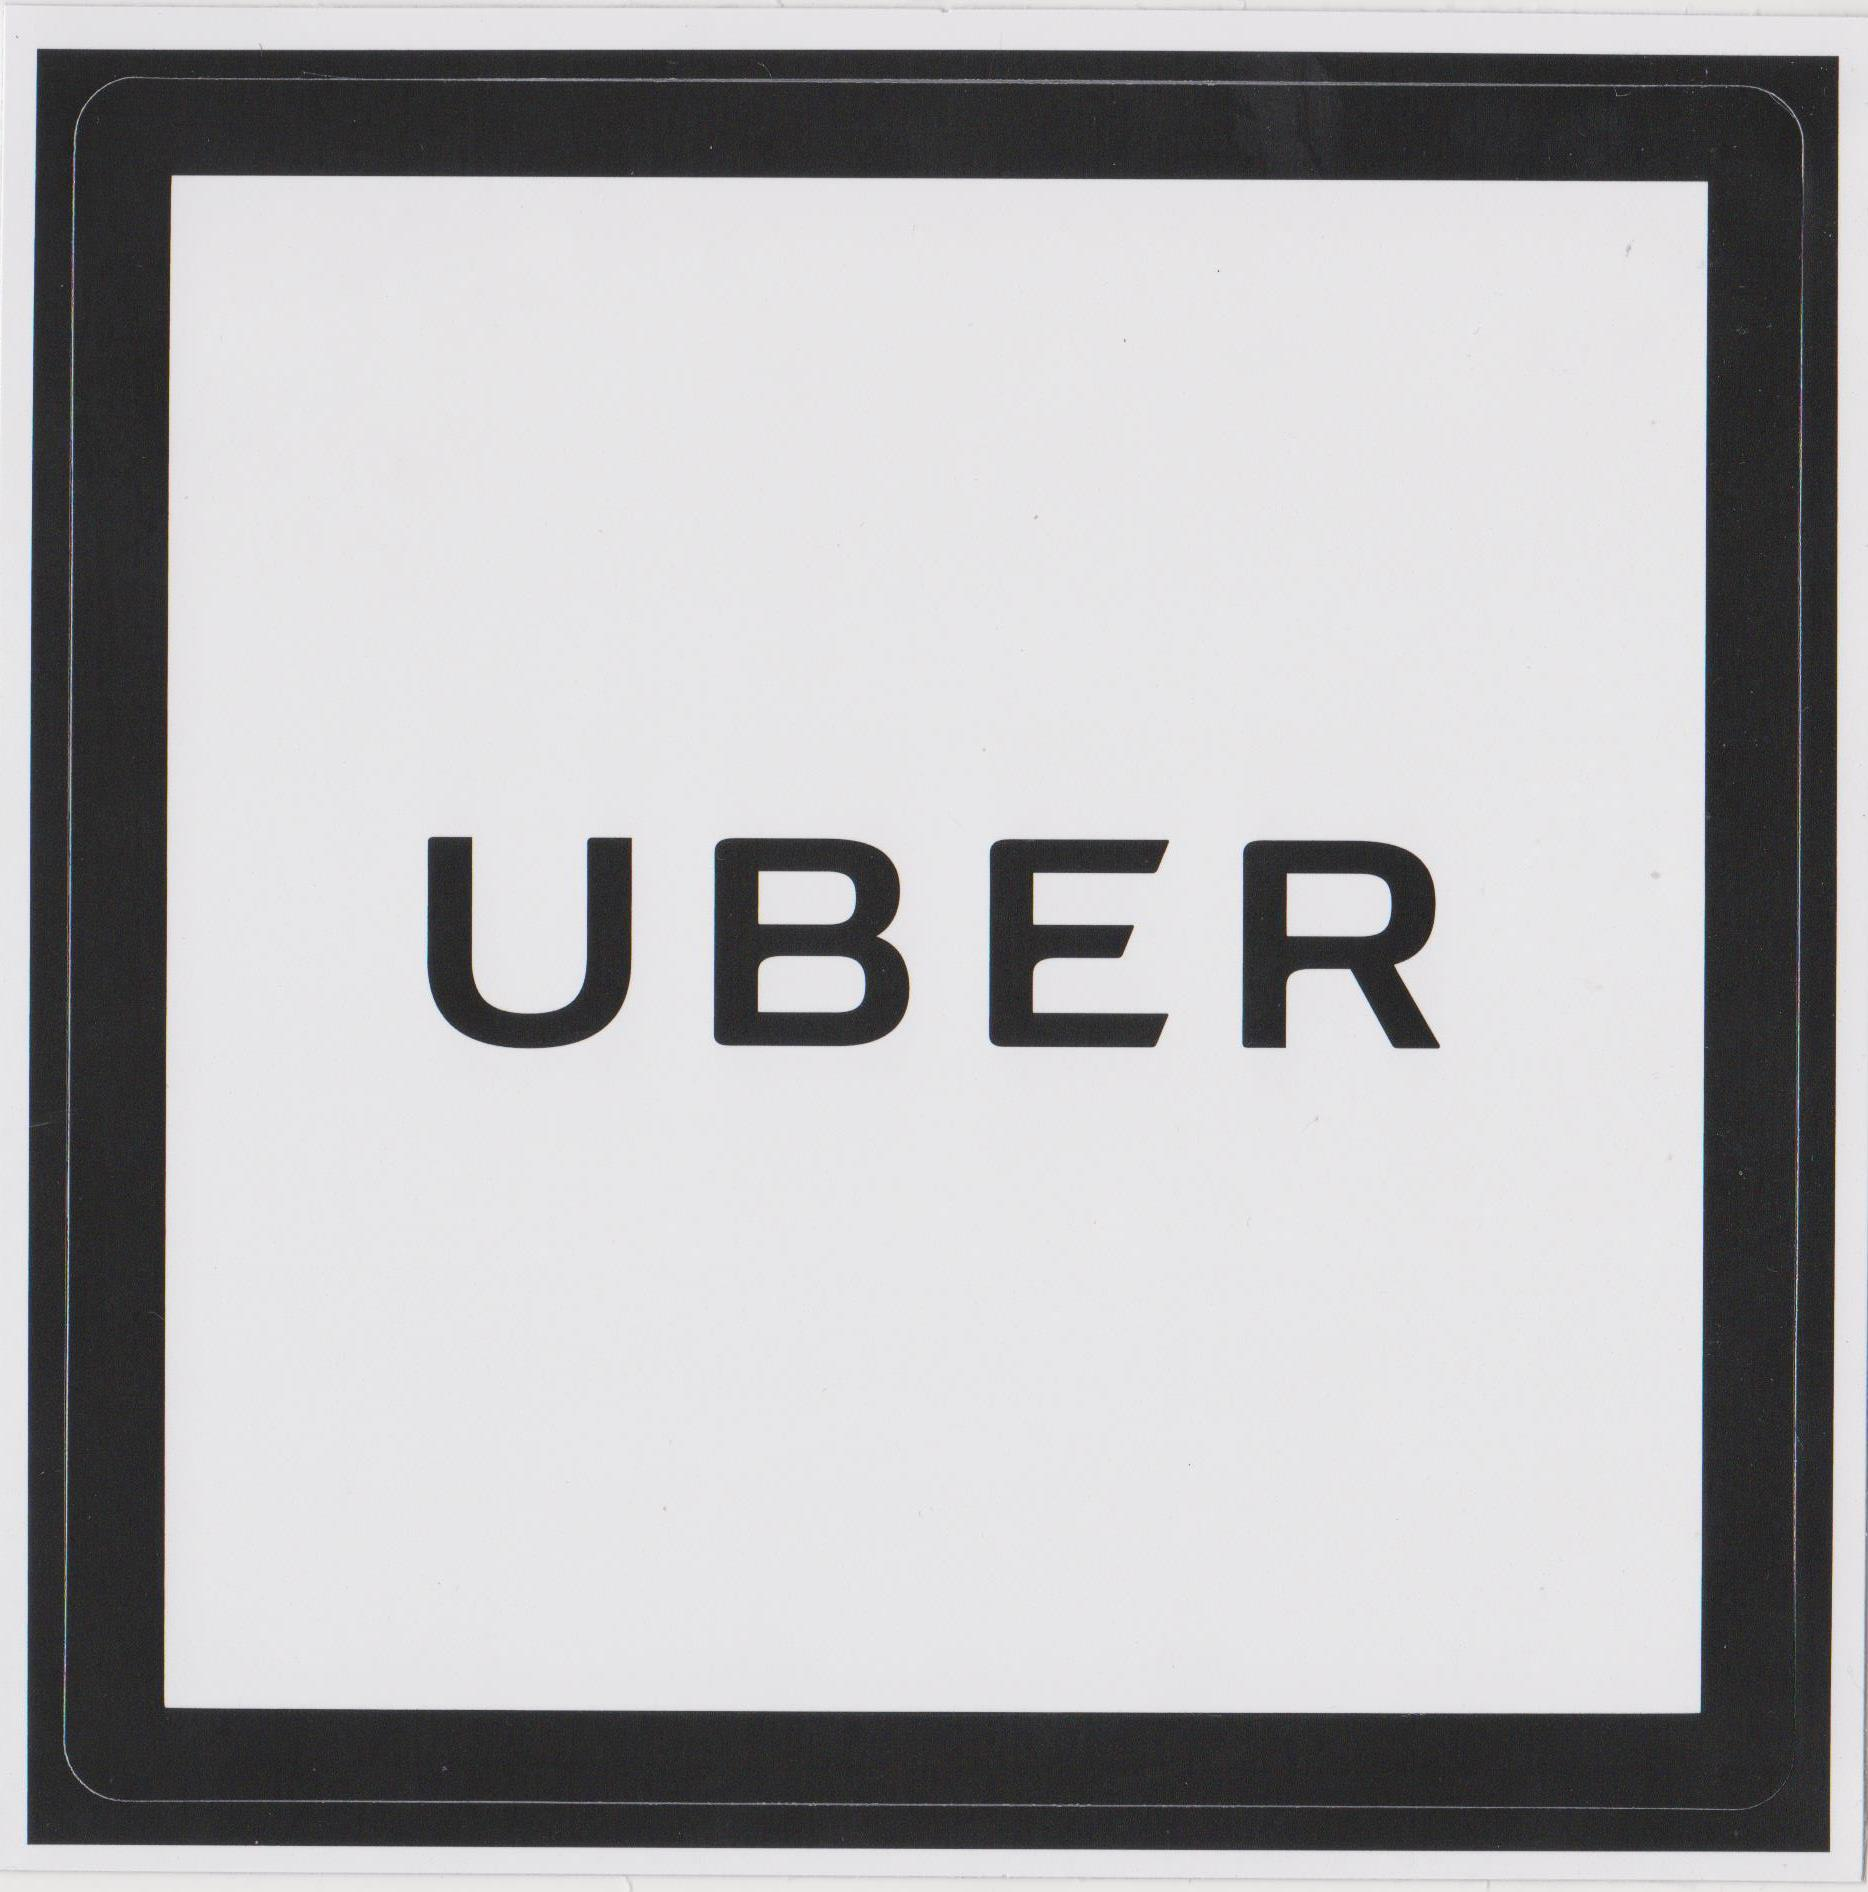 New uber sticker for uber drivers in qld